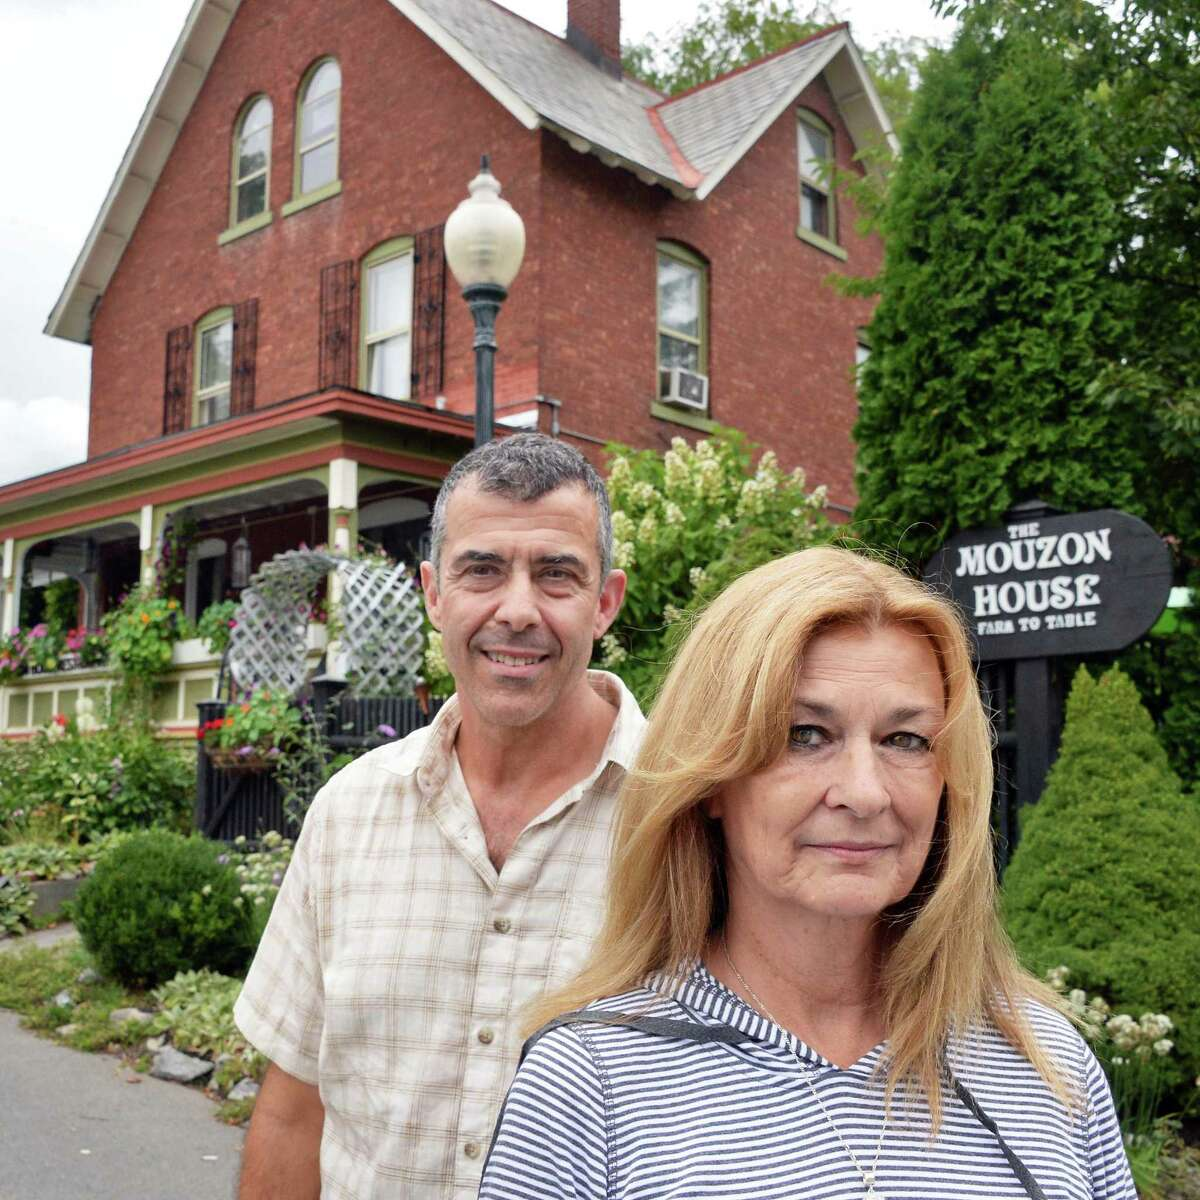 David and Dianne Pedinotti, husband and wife co-owners of the Mouzon House outside their restaurant Thursday Sept. 10, 2015 in Saratoga Springs, NY. They sit on the planning committee for a  parking garage near their restaurant. (John Carl D'Annibale / Times Union)